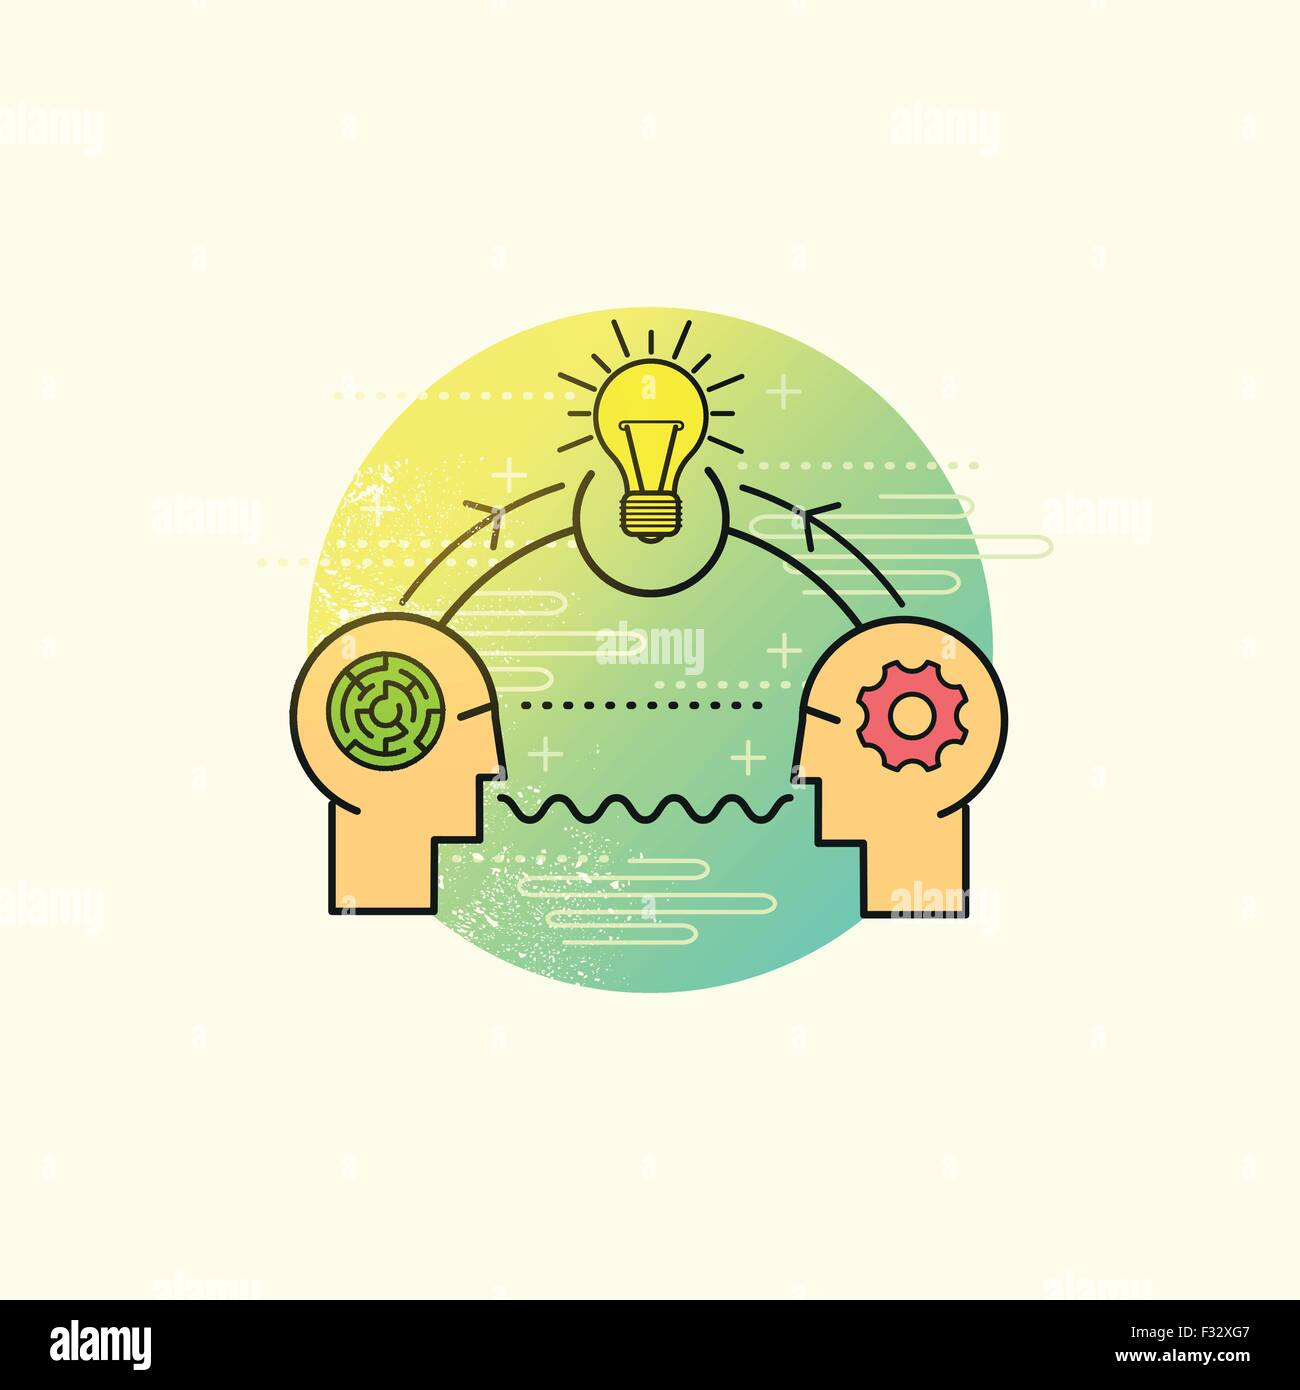 Business Problem Solving Vector. two people working together to solve a problem. Vector illustration. - Stock Vector